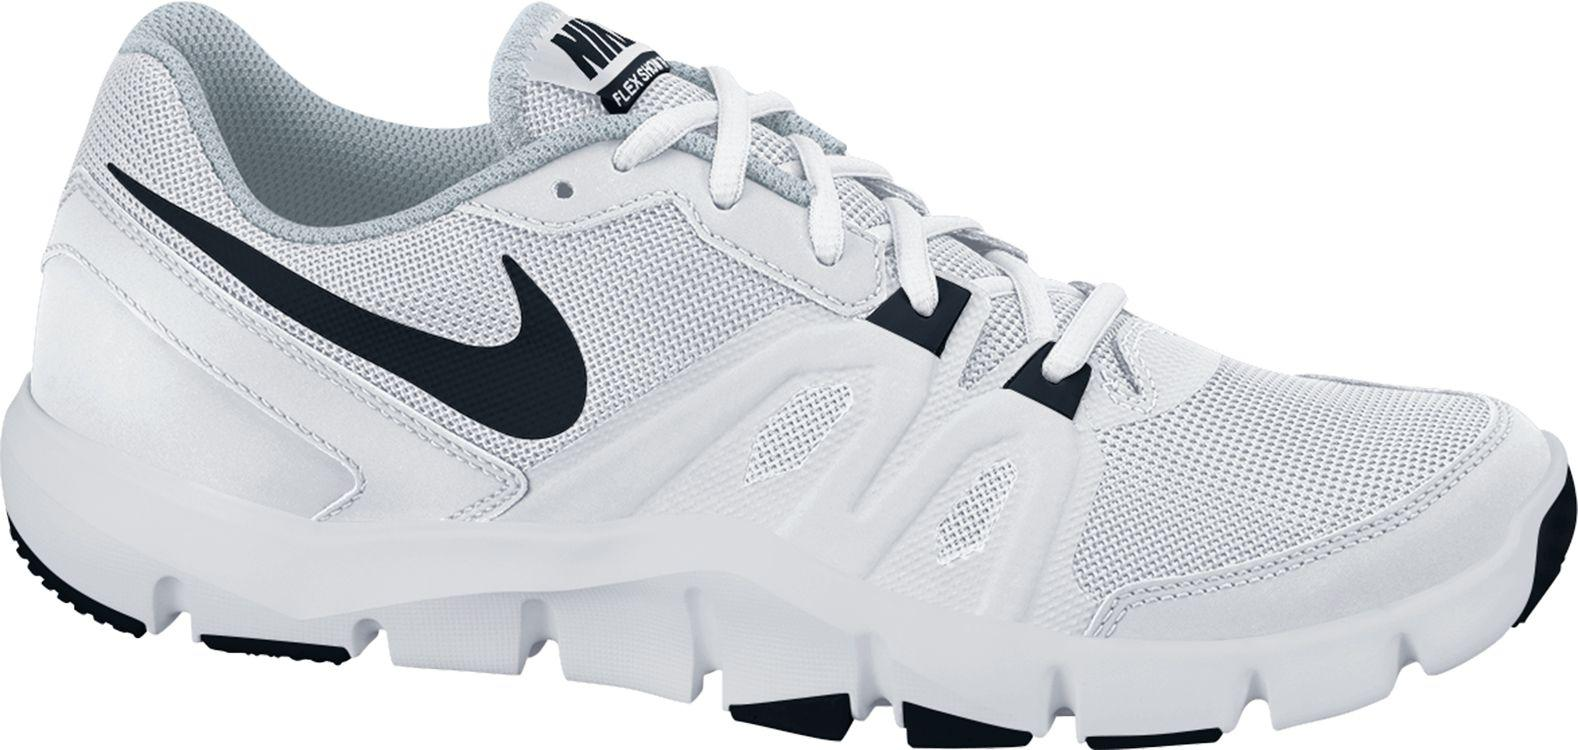 b88a6664da86 Lyst - Nike Flex Show Tr 4 Training Shoes in White for Men